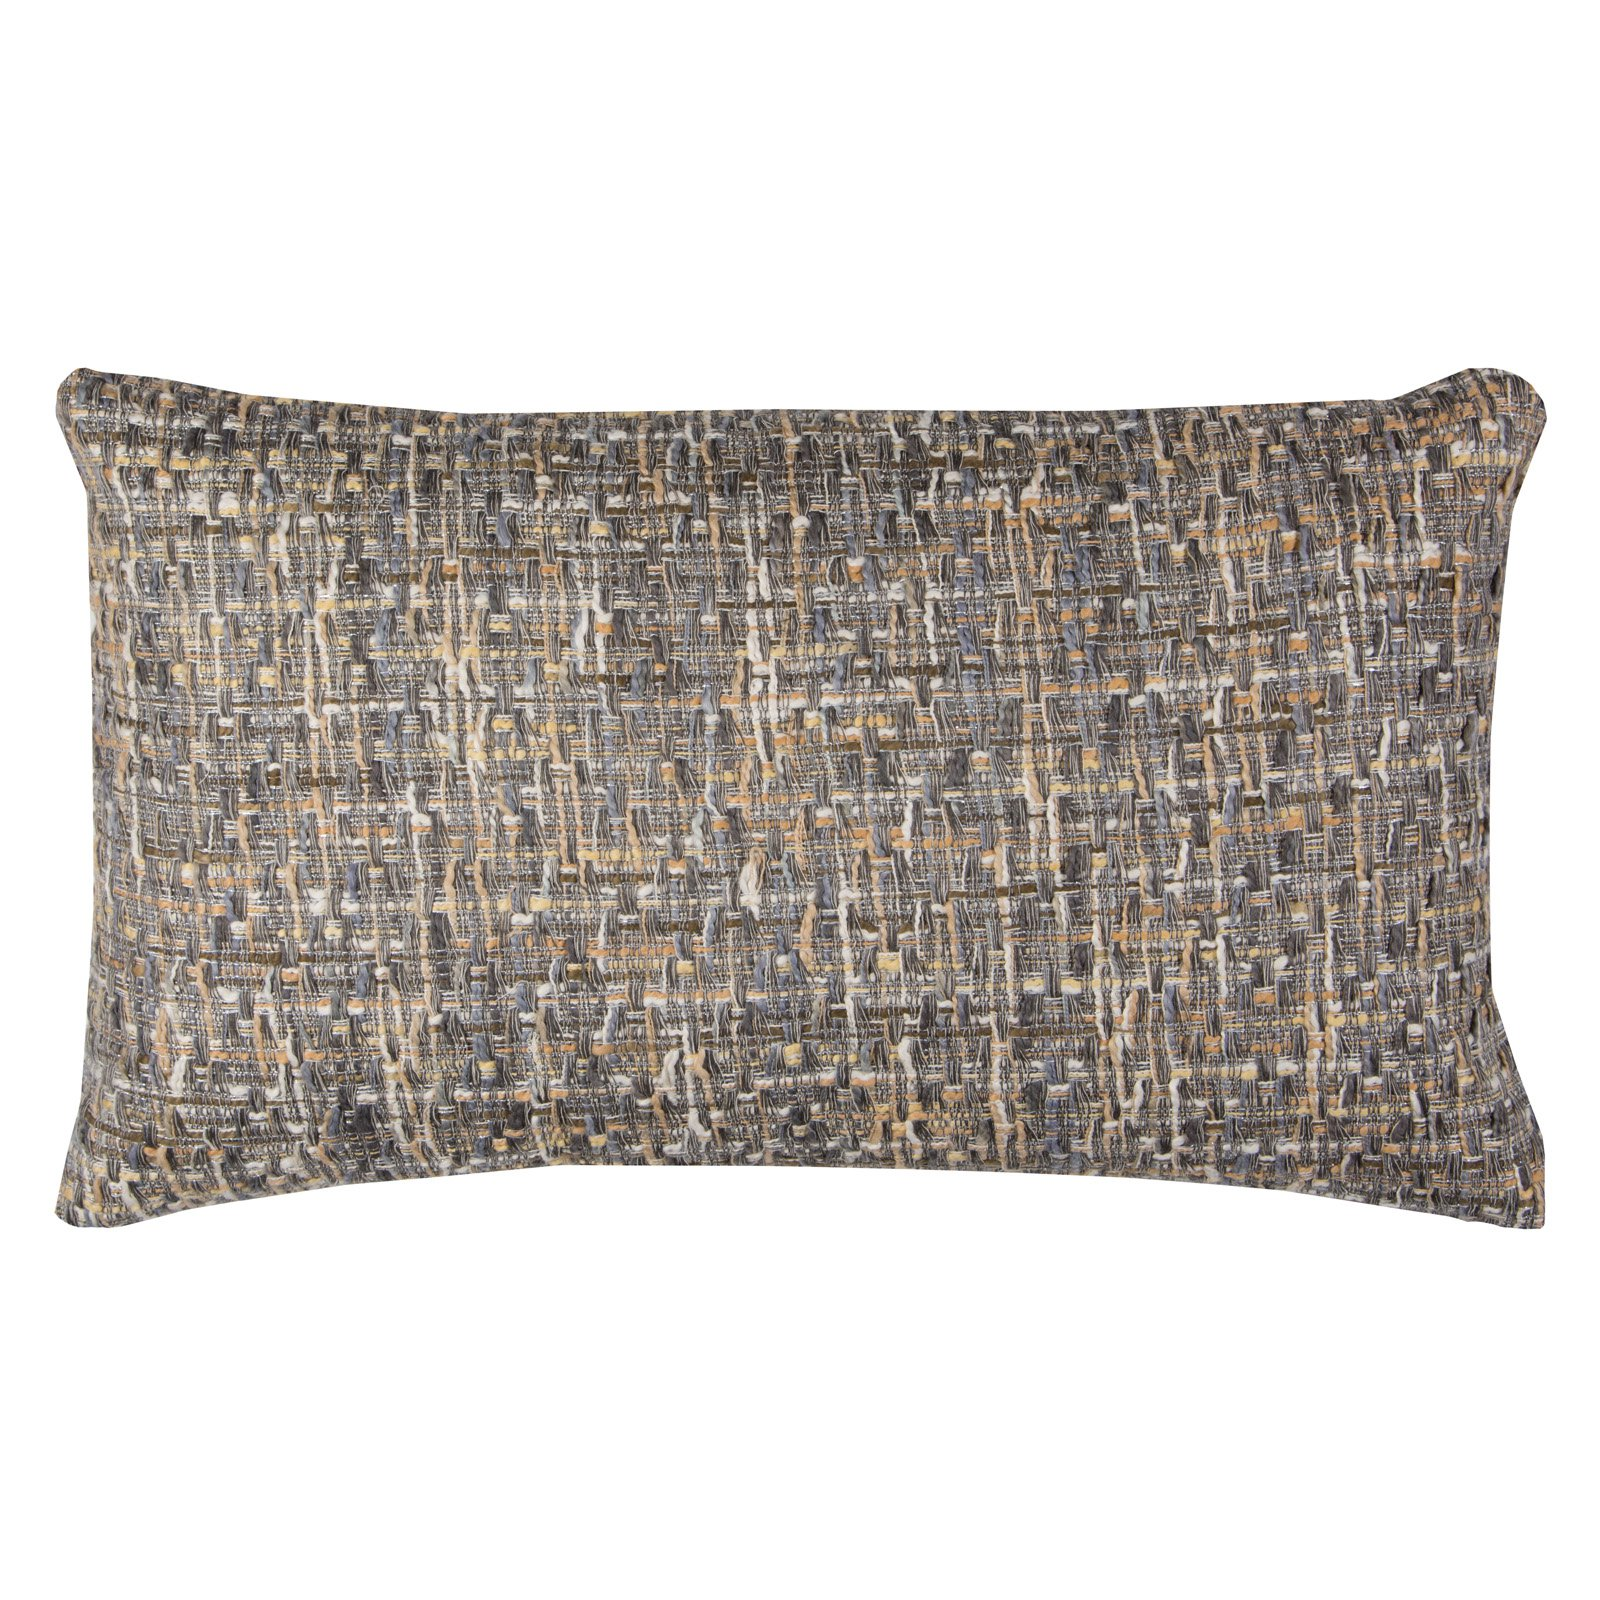 """Rizzy Home ALL OVER THREADED PATTERN14"""" x 26""""Cottondecorative filled pillow"""